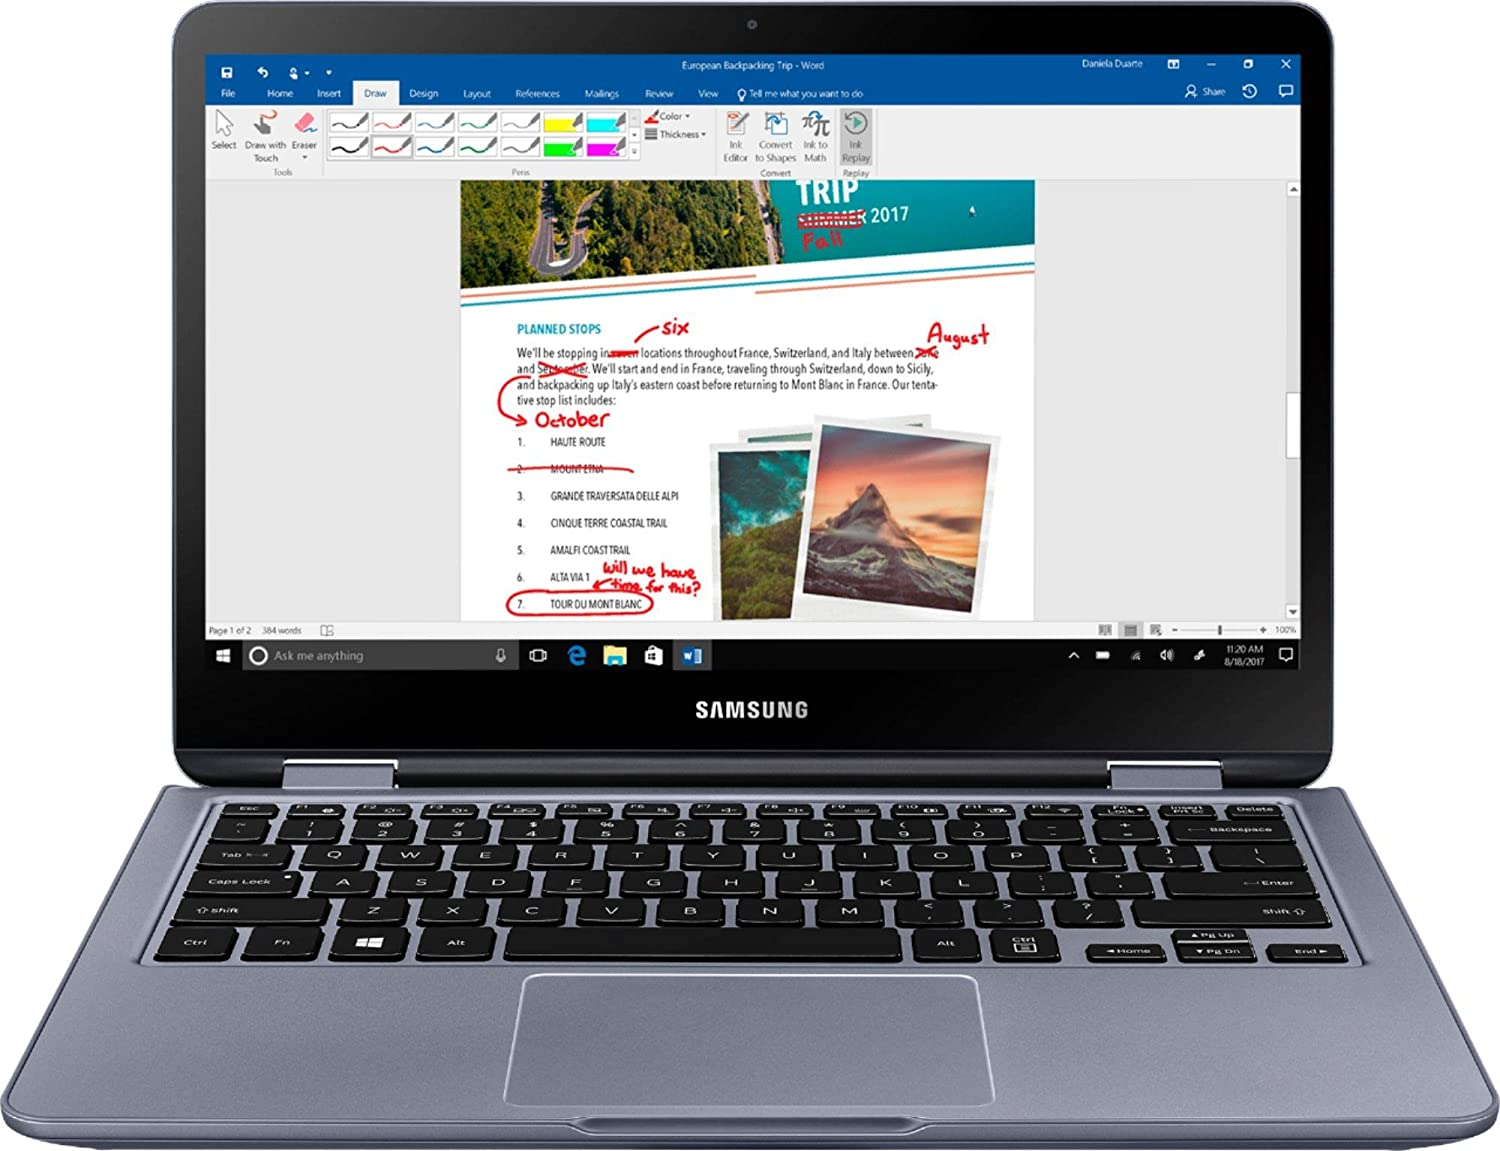 "Samsung - Notebook 7 Spin 2-in-1 13.3"" Touch-Screen Laptop - Intel Core i5 - 8GB Memory - 512GB Solid State Drive - Stealth Silver (Renewed)"